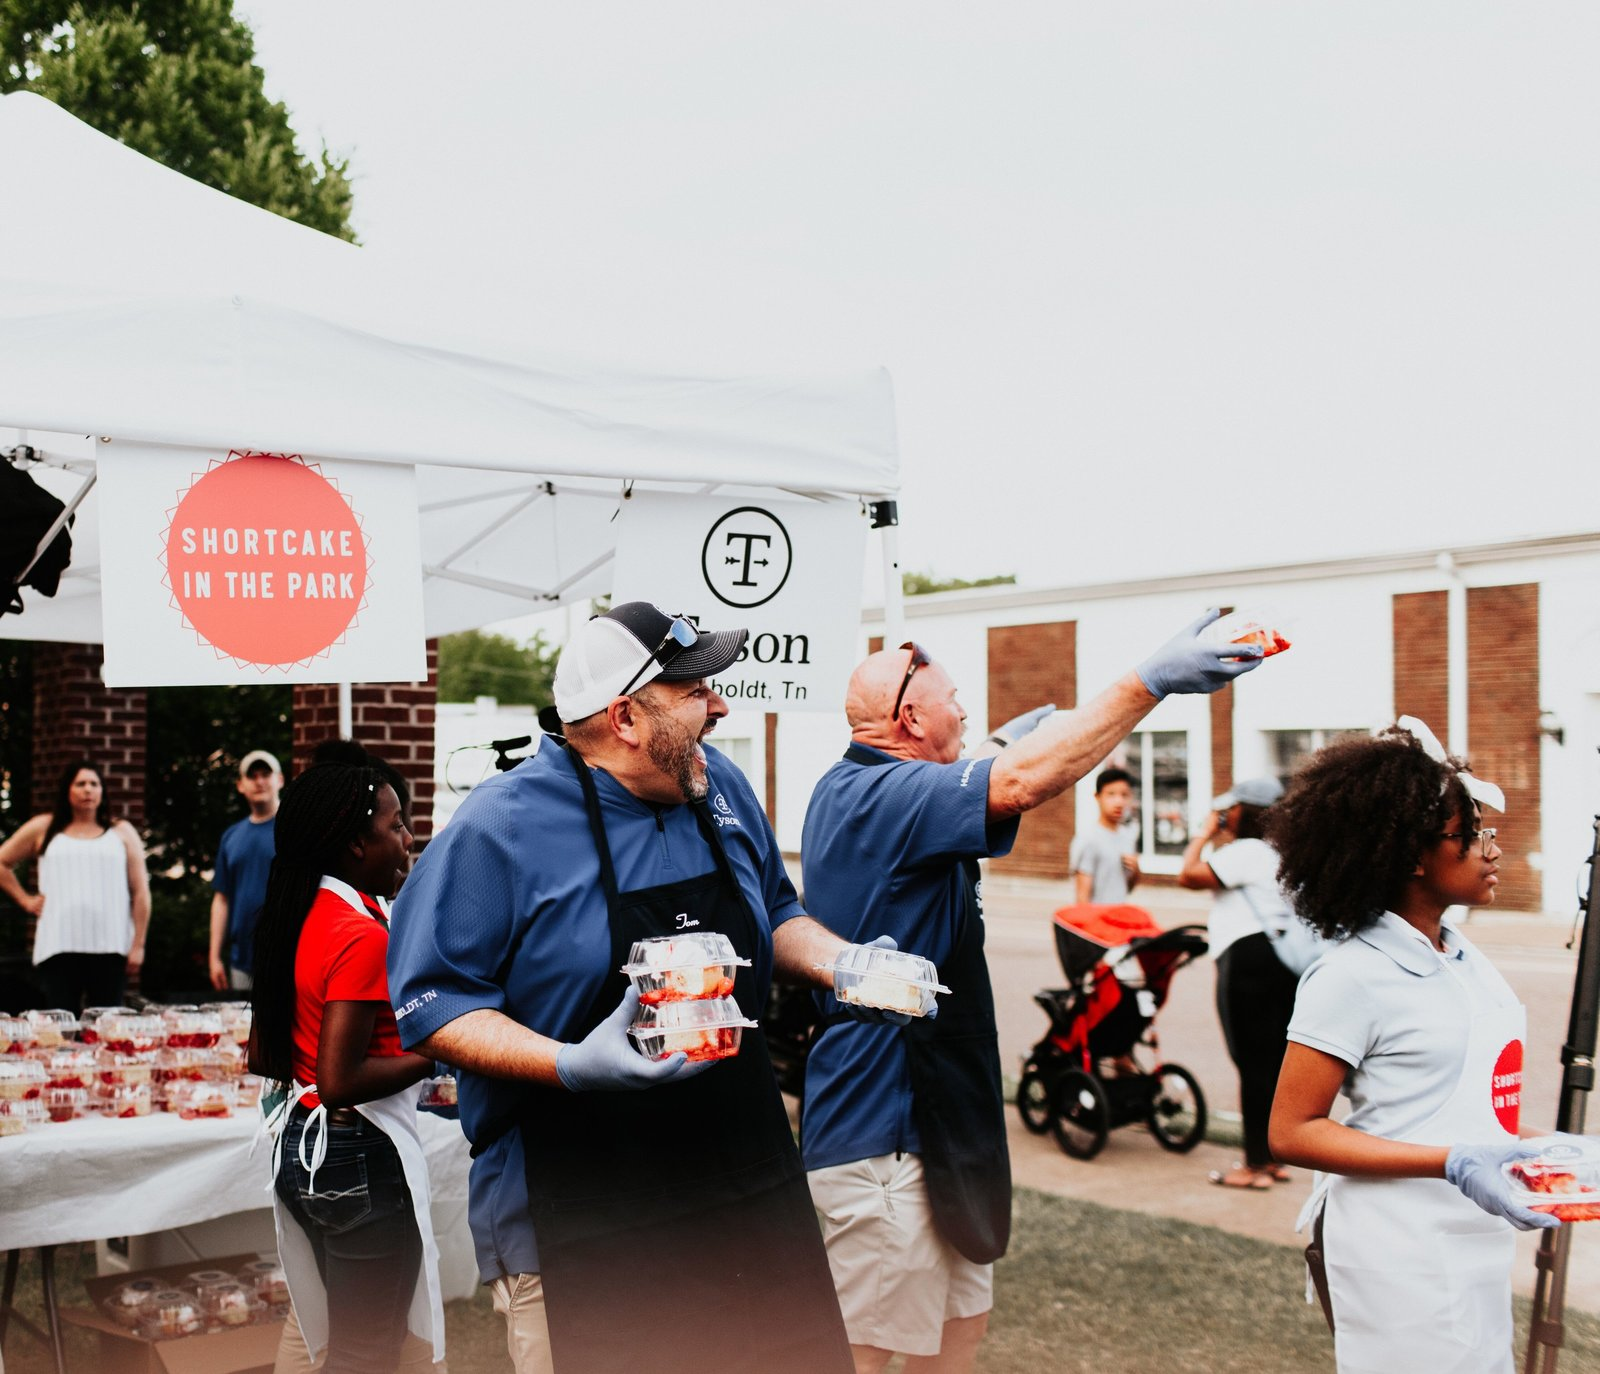 2019 West Tennessee Strawberry Festival - Shortcake in the park - 38